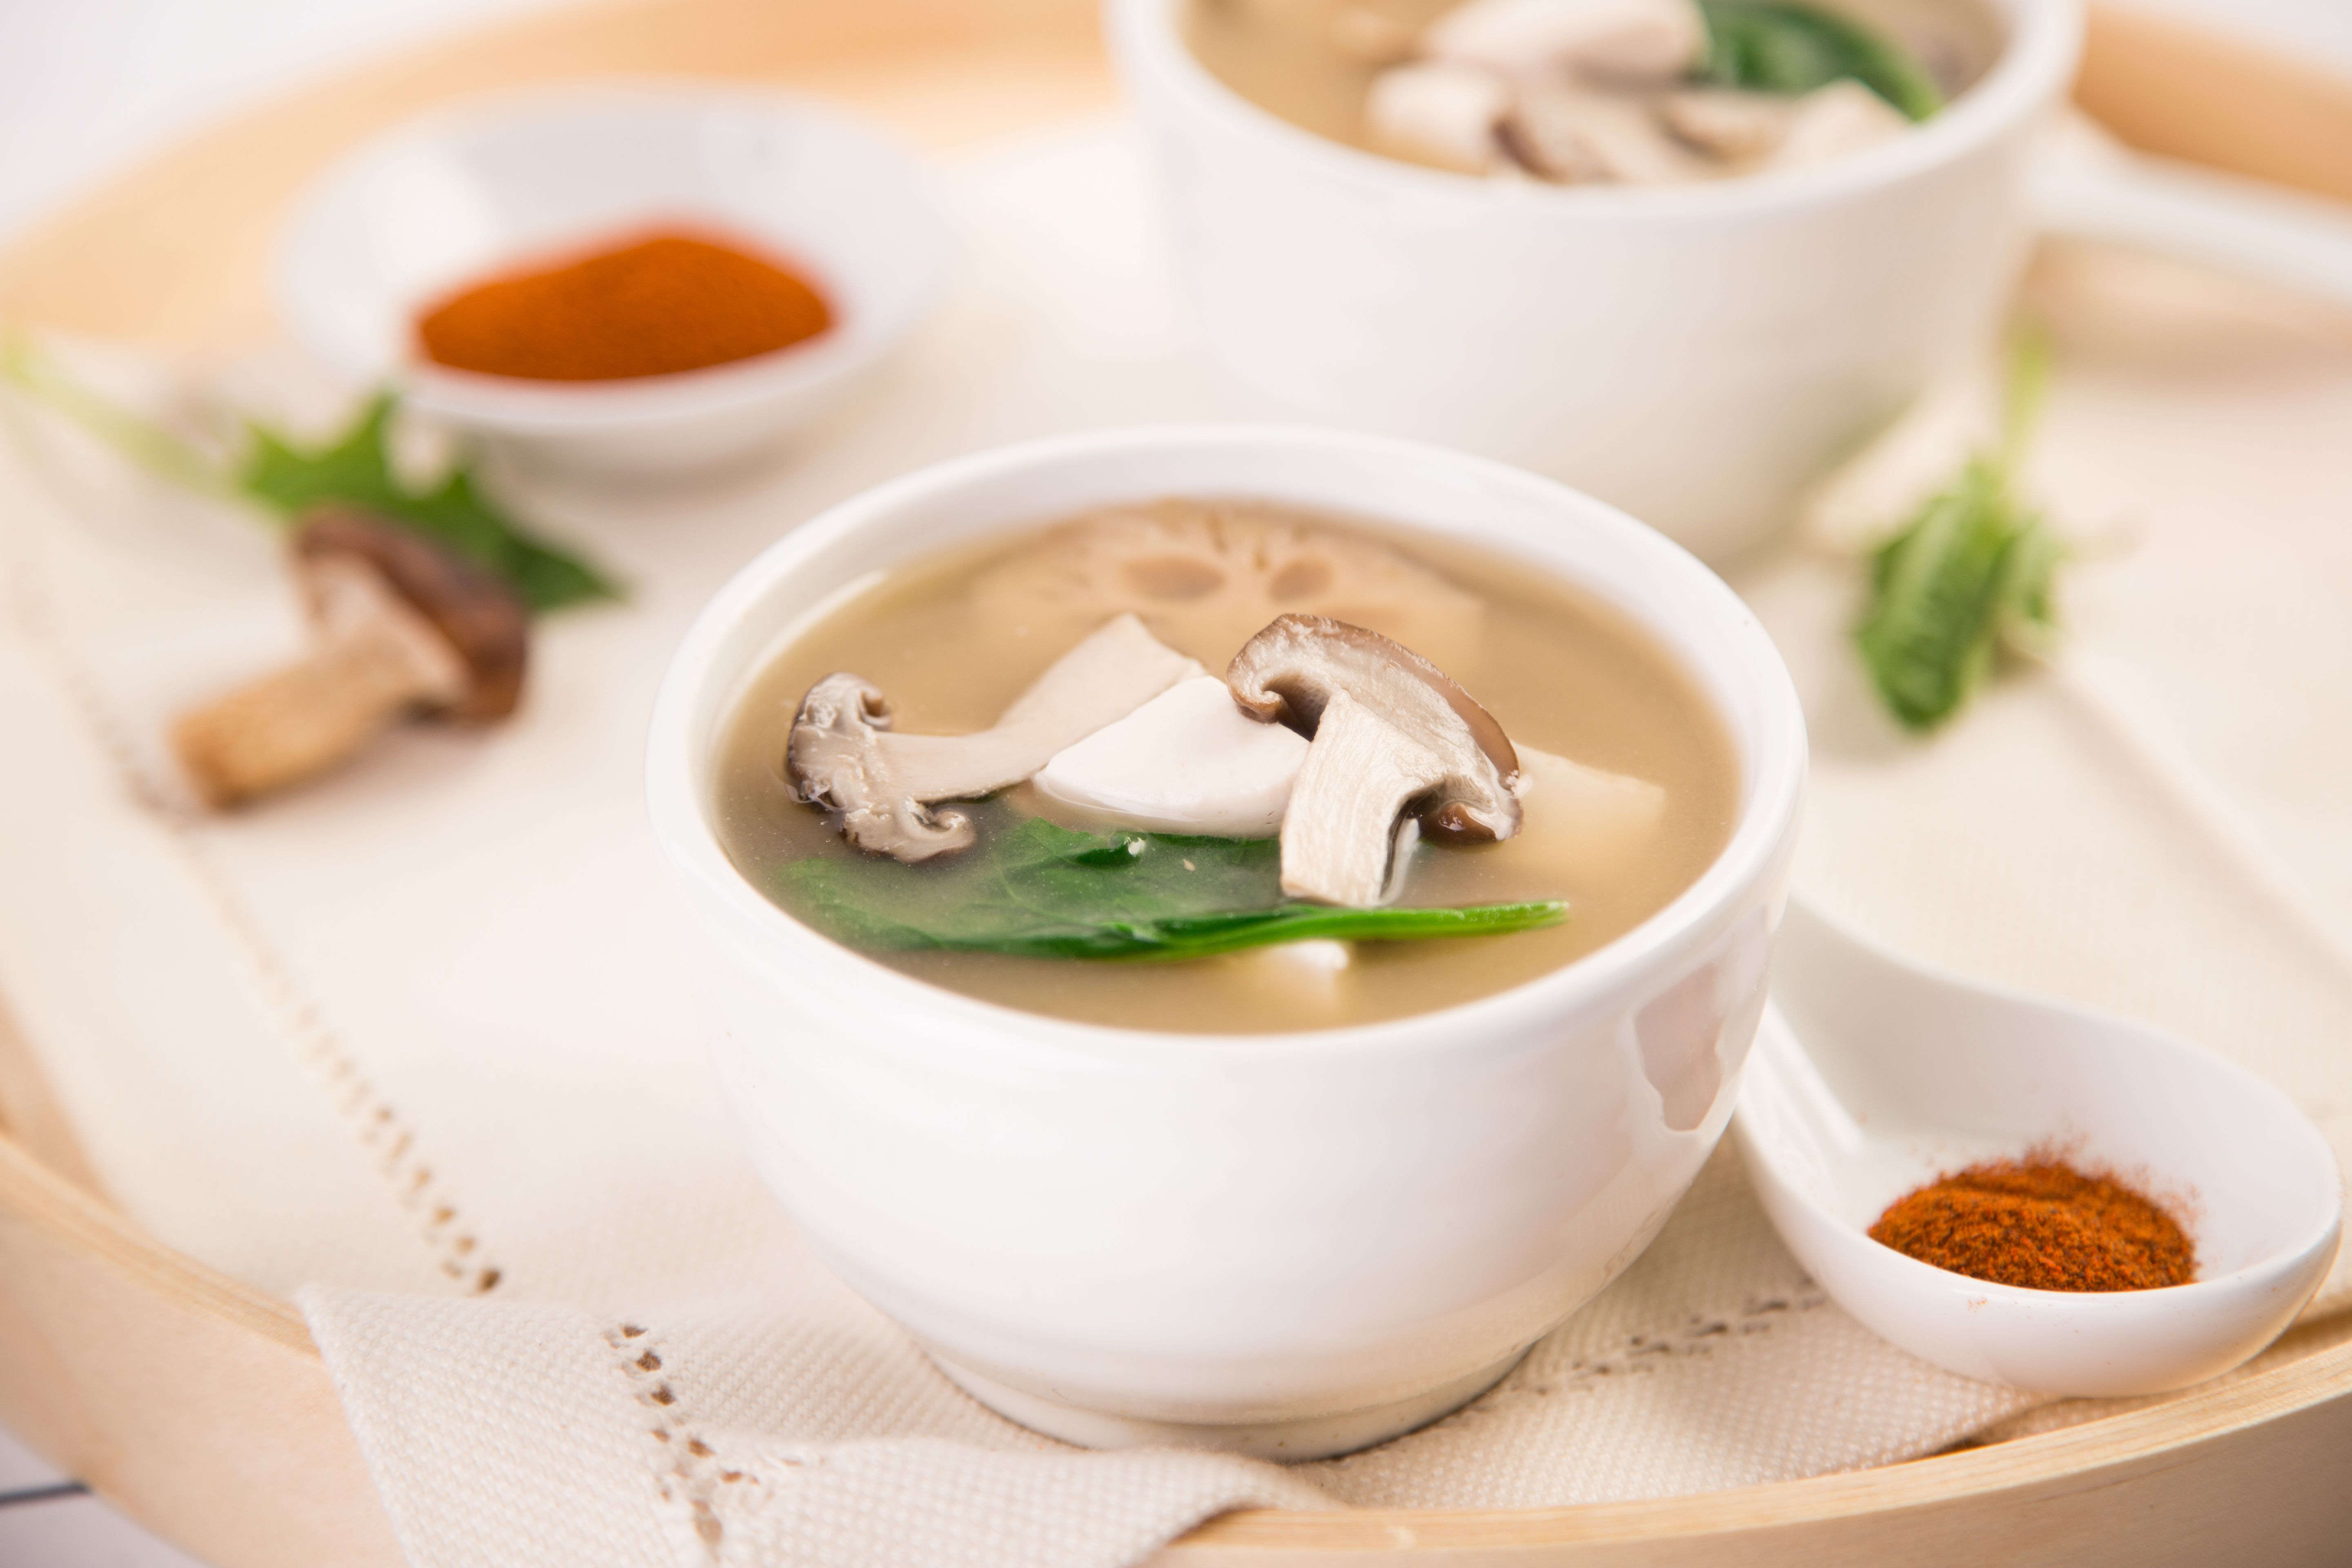 Close-Up Of Miso Soup With Mushrooms And Tofu On Table